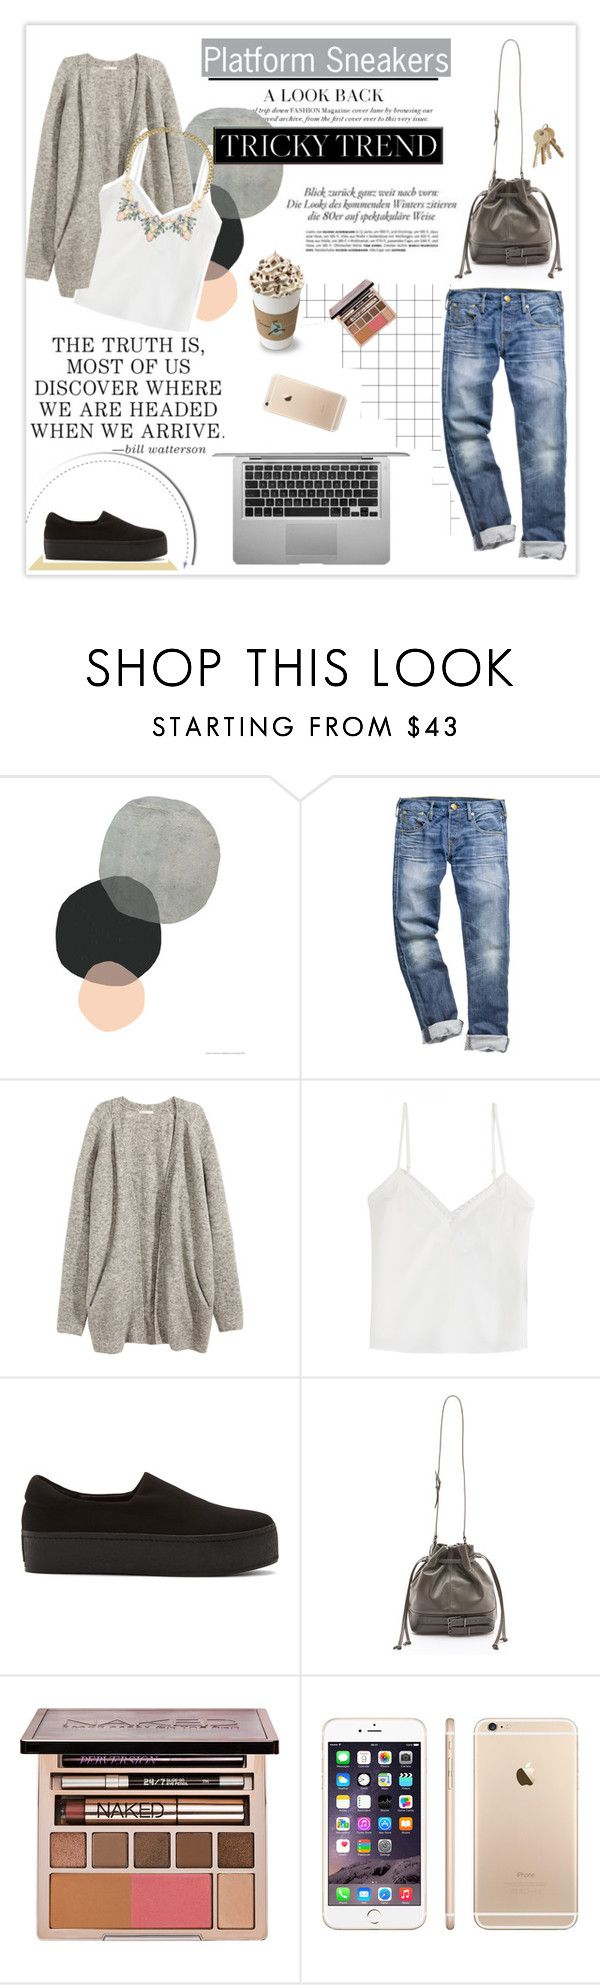 """""""Tricky Trend: Platform Sneakers"""" by leniastuti ❤ liked on Polyvore featuring H&M, The Kooples, Opening Ceremony, Rachel Zoe, Urban Decay, Lipsy and platformsneakers"""